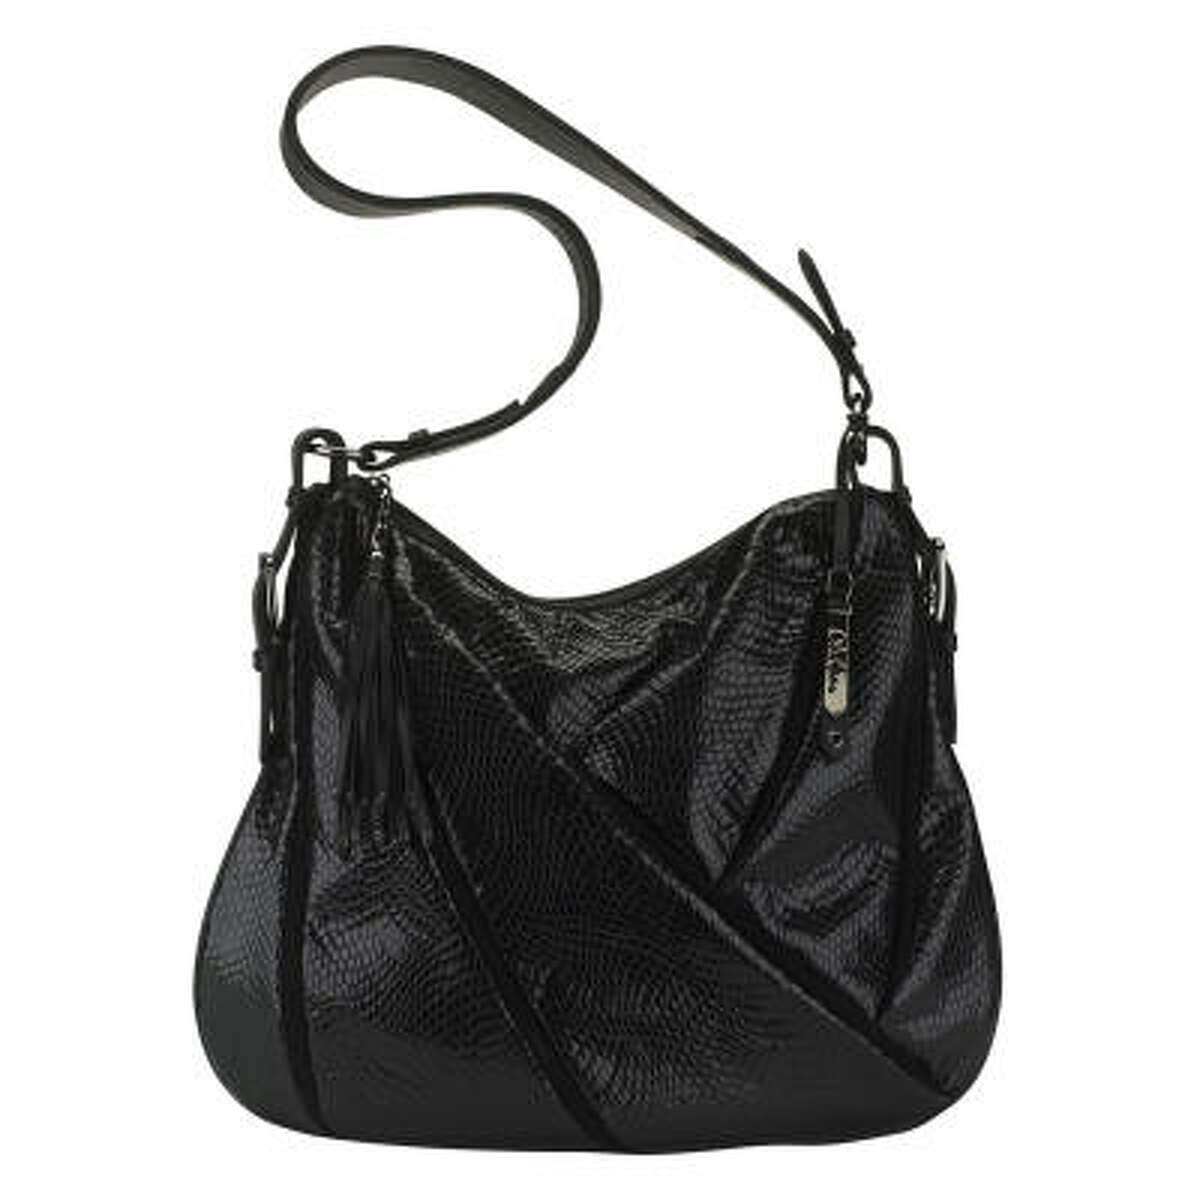 The Maria N/S Hobo is just one of the handbag selections available under the Maria Sharapova Collection.